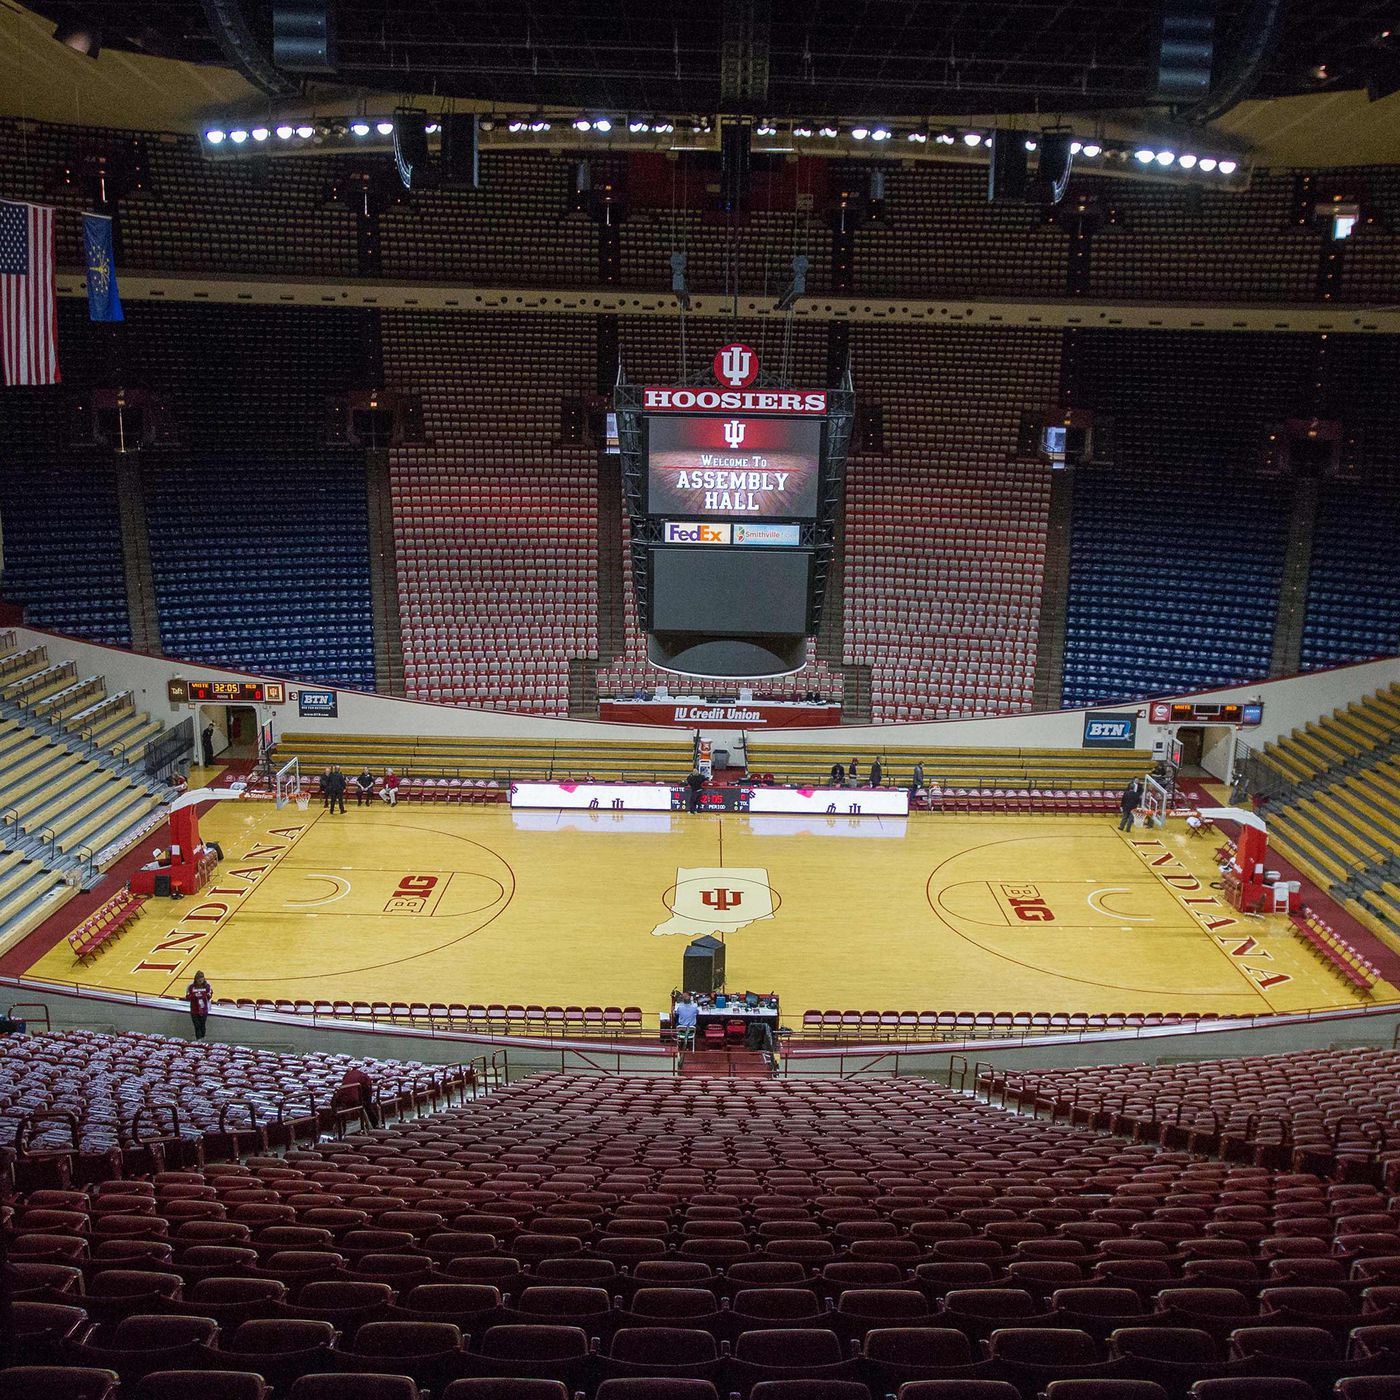 The calm before the storm of a big game at Indiana University